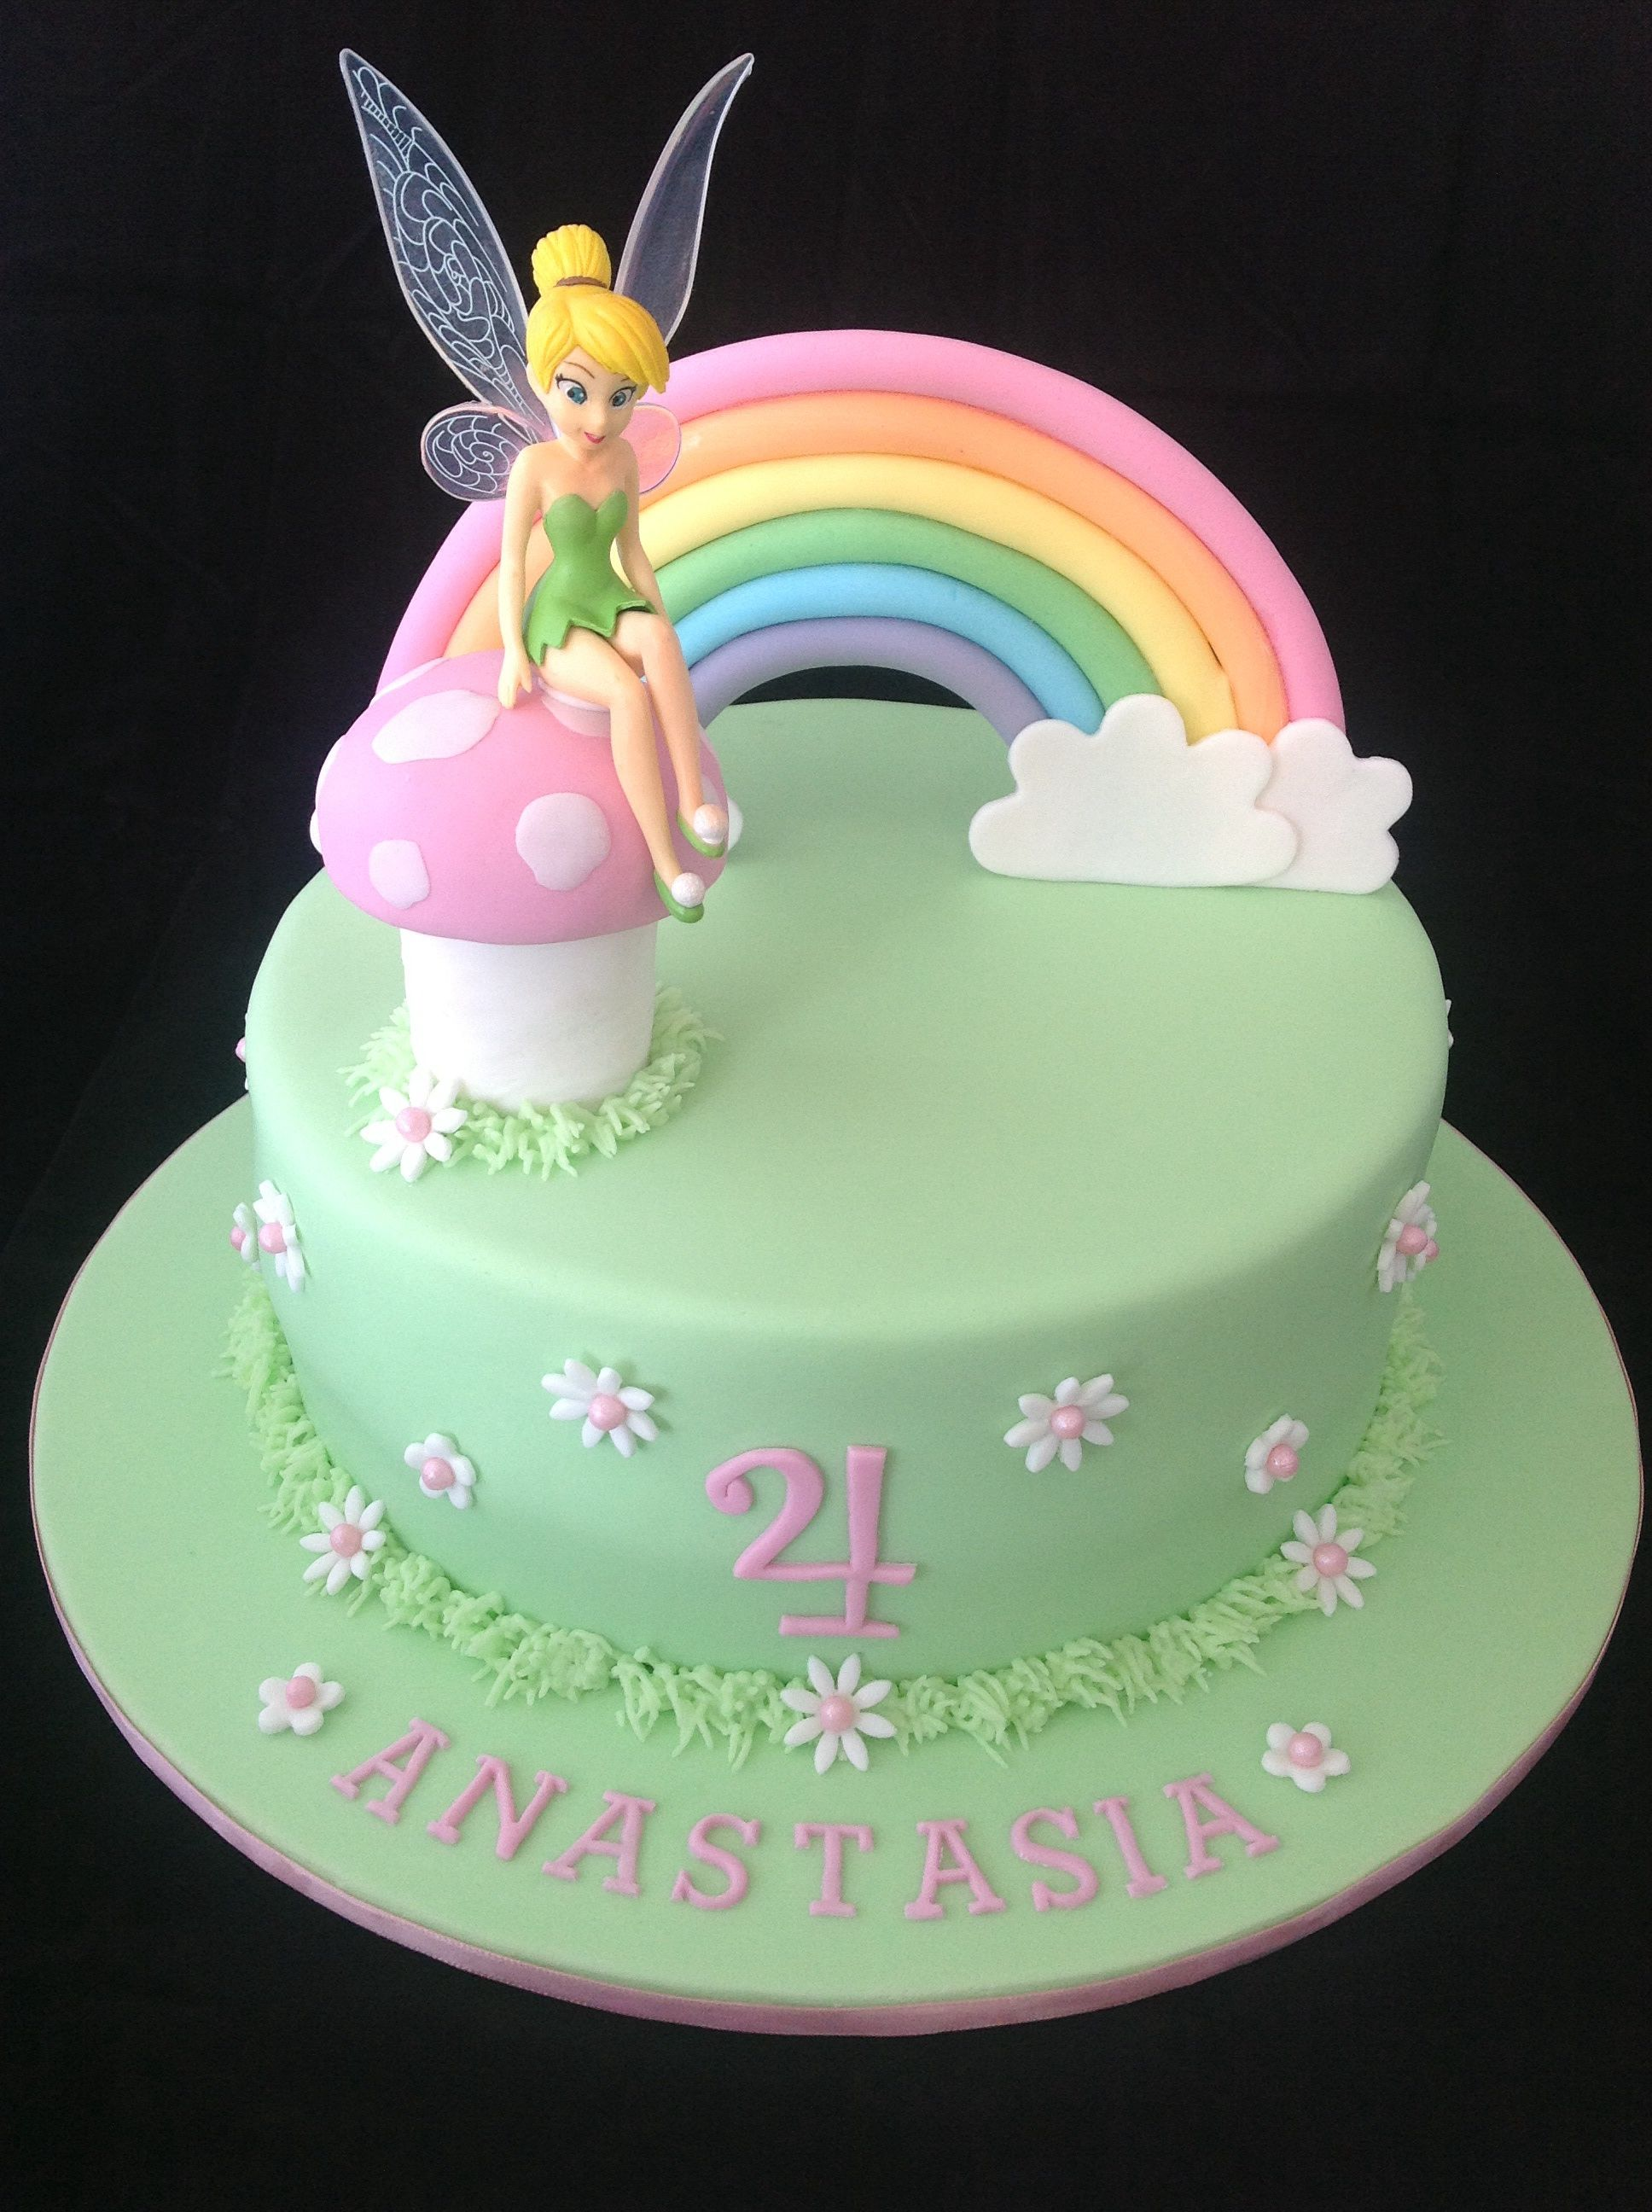 Groovy Tinkerbell Cake Love The Simplicity Of This One Tinkerbell Personalised Birthday Cards Sponlily Jamesorg